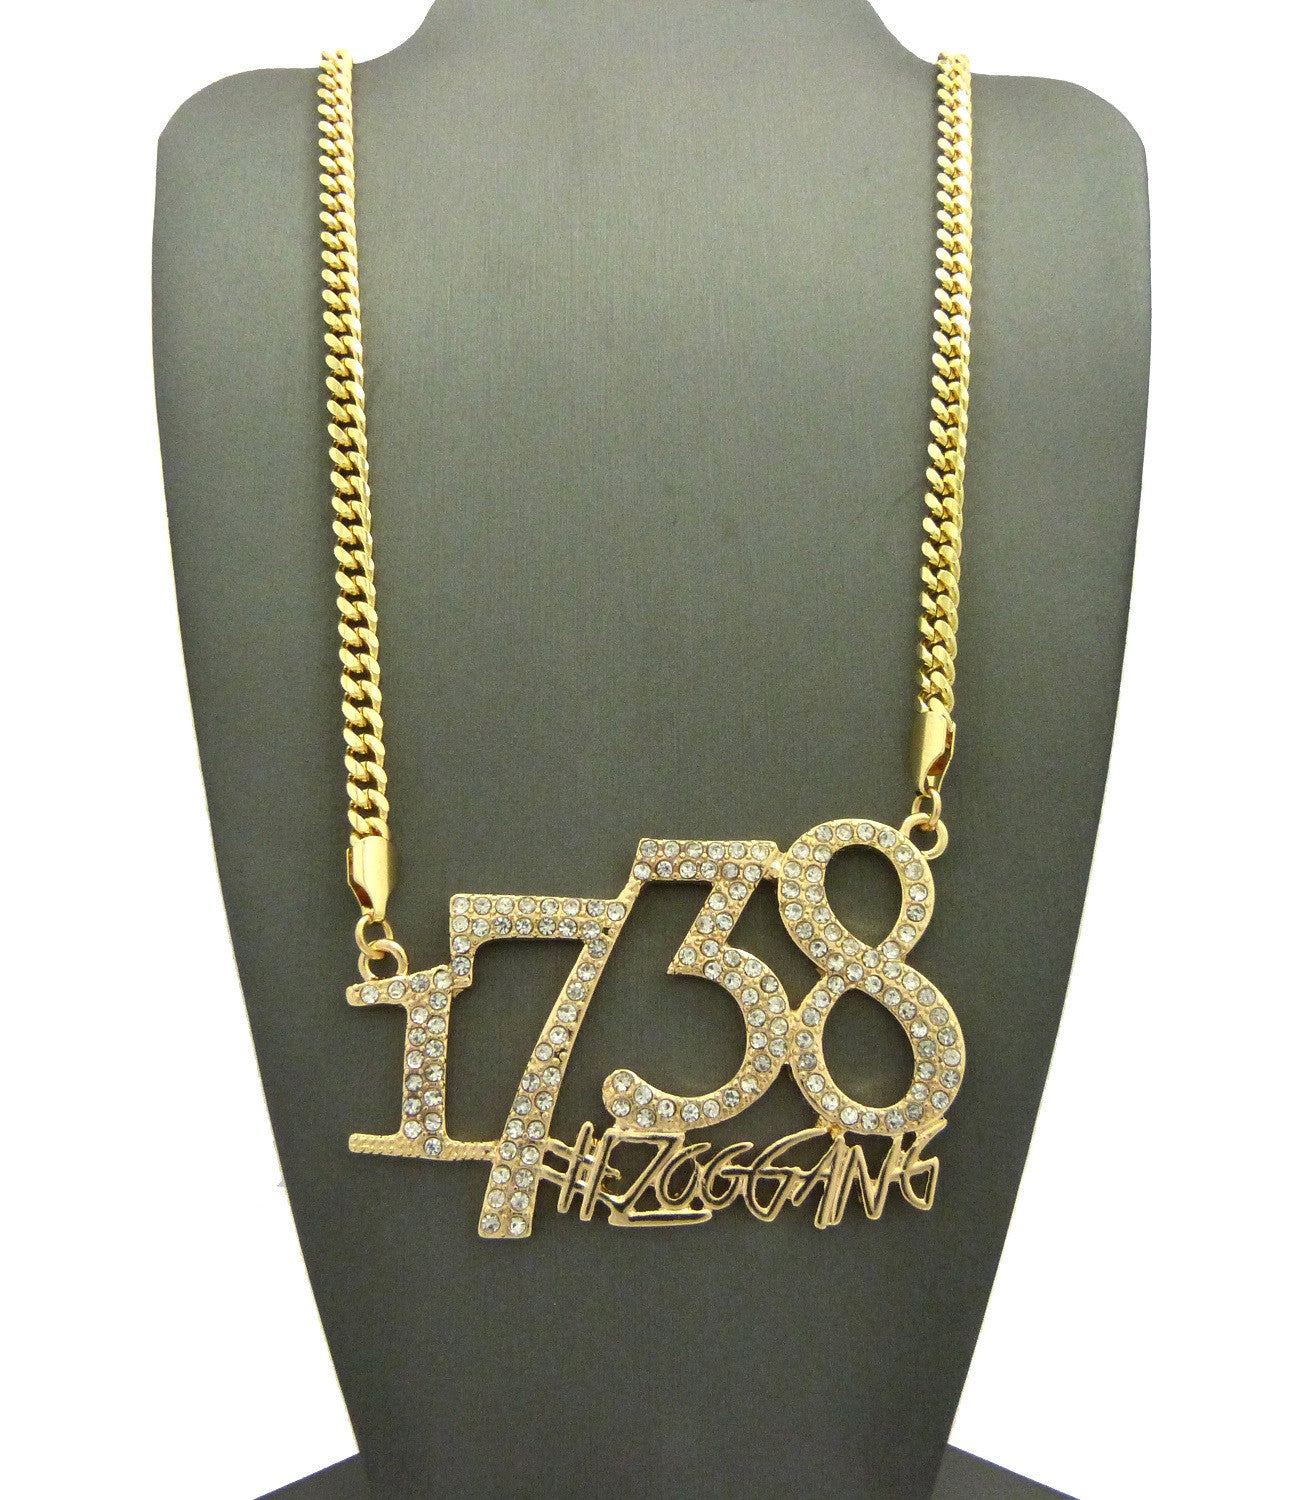 14k Gold Plated 1738 Zoo Gang On Cuban Link 36 Inches